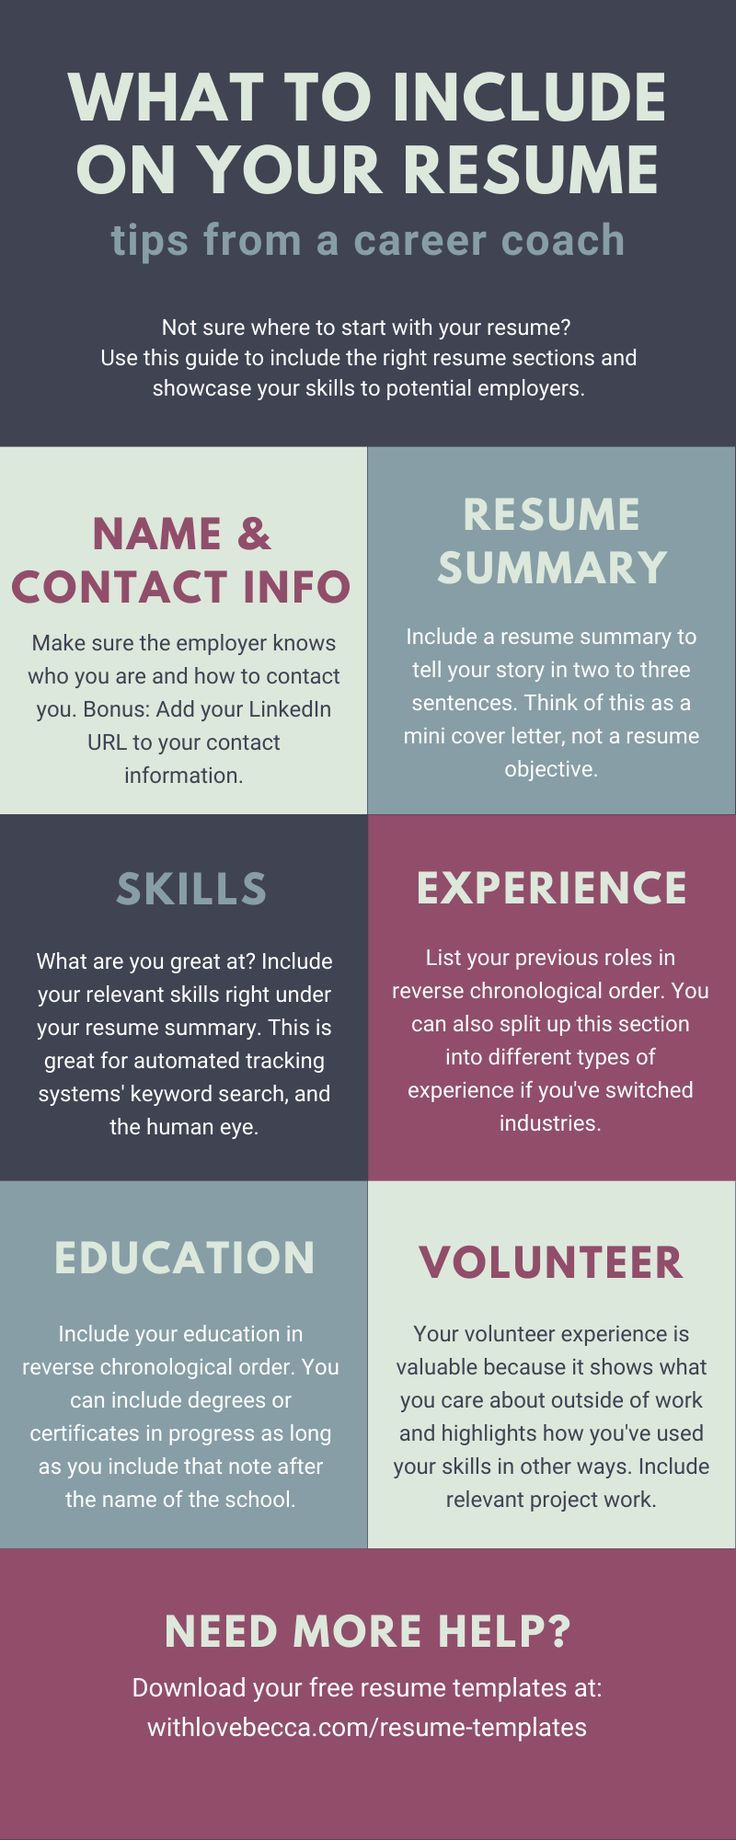 Summary Section Of Resume Of Resume Templates with Love Becca